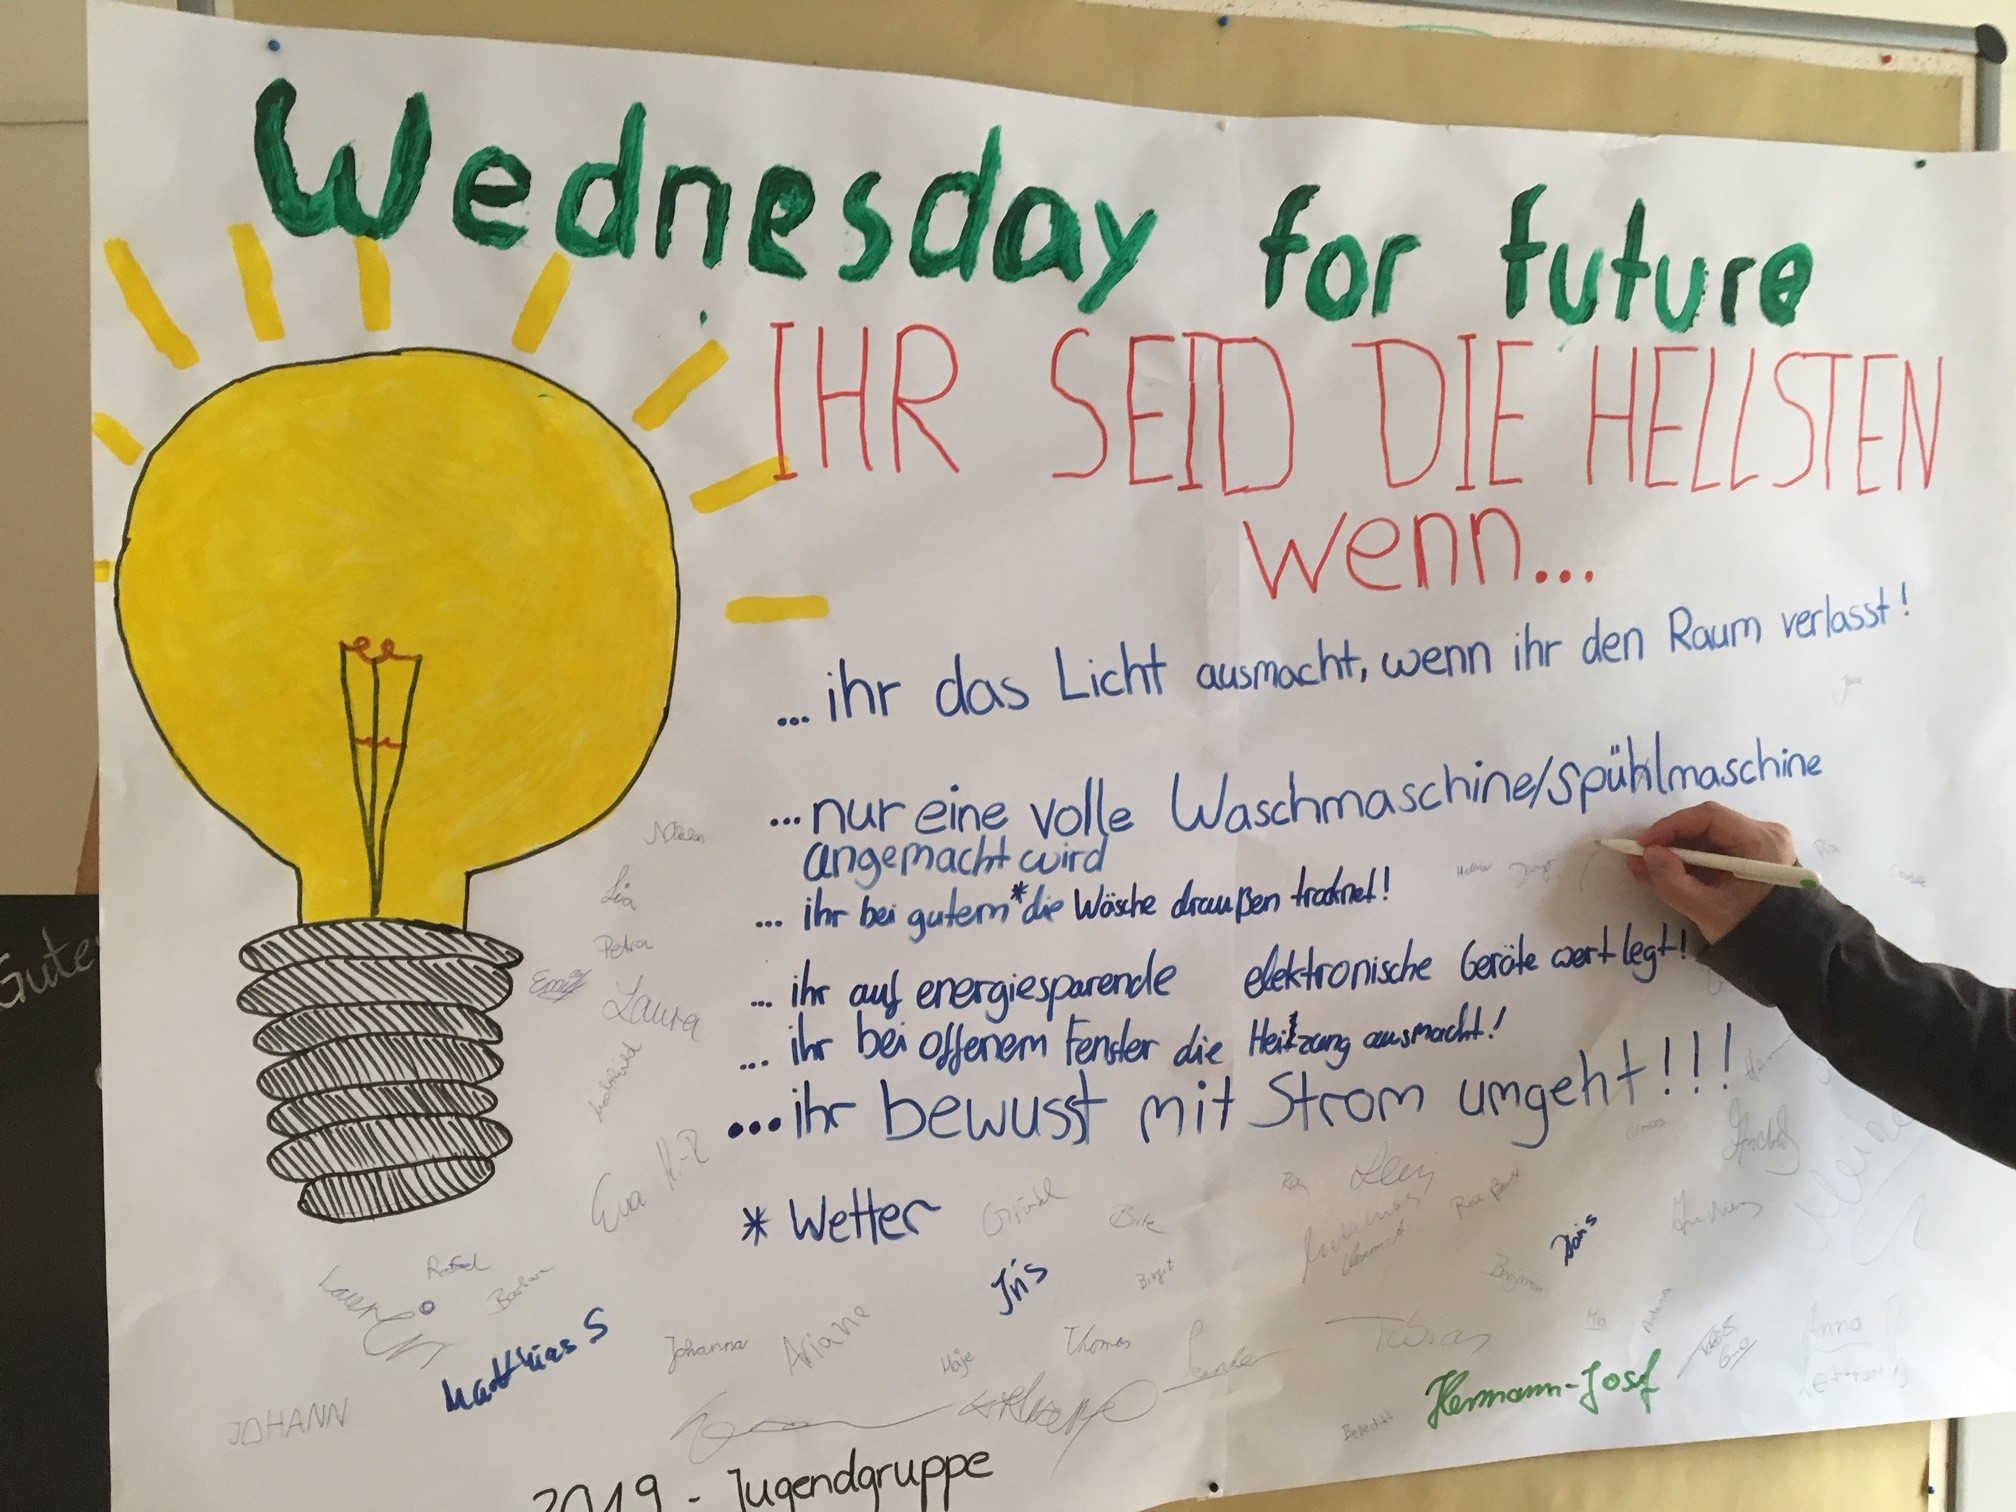 Plakat der Jugendgruppe in der Karwoche, die alle tage à la Fridays for Future gestalten: gestern war Wednesday for future